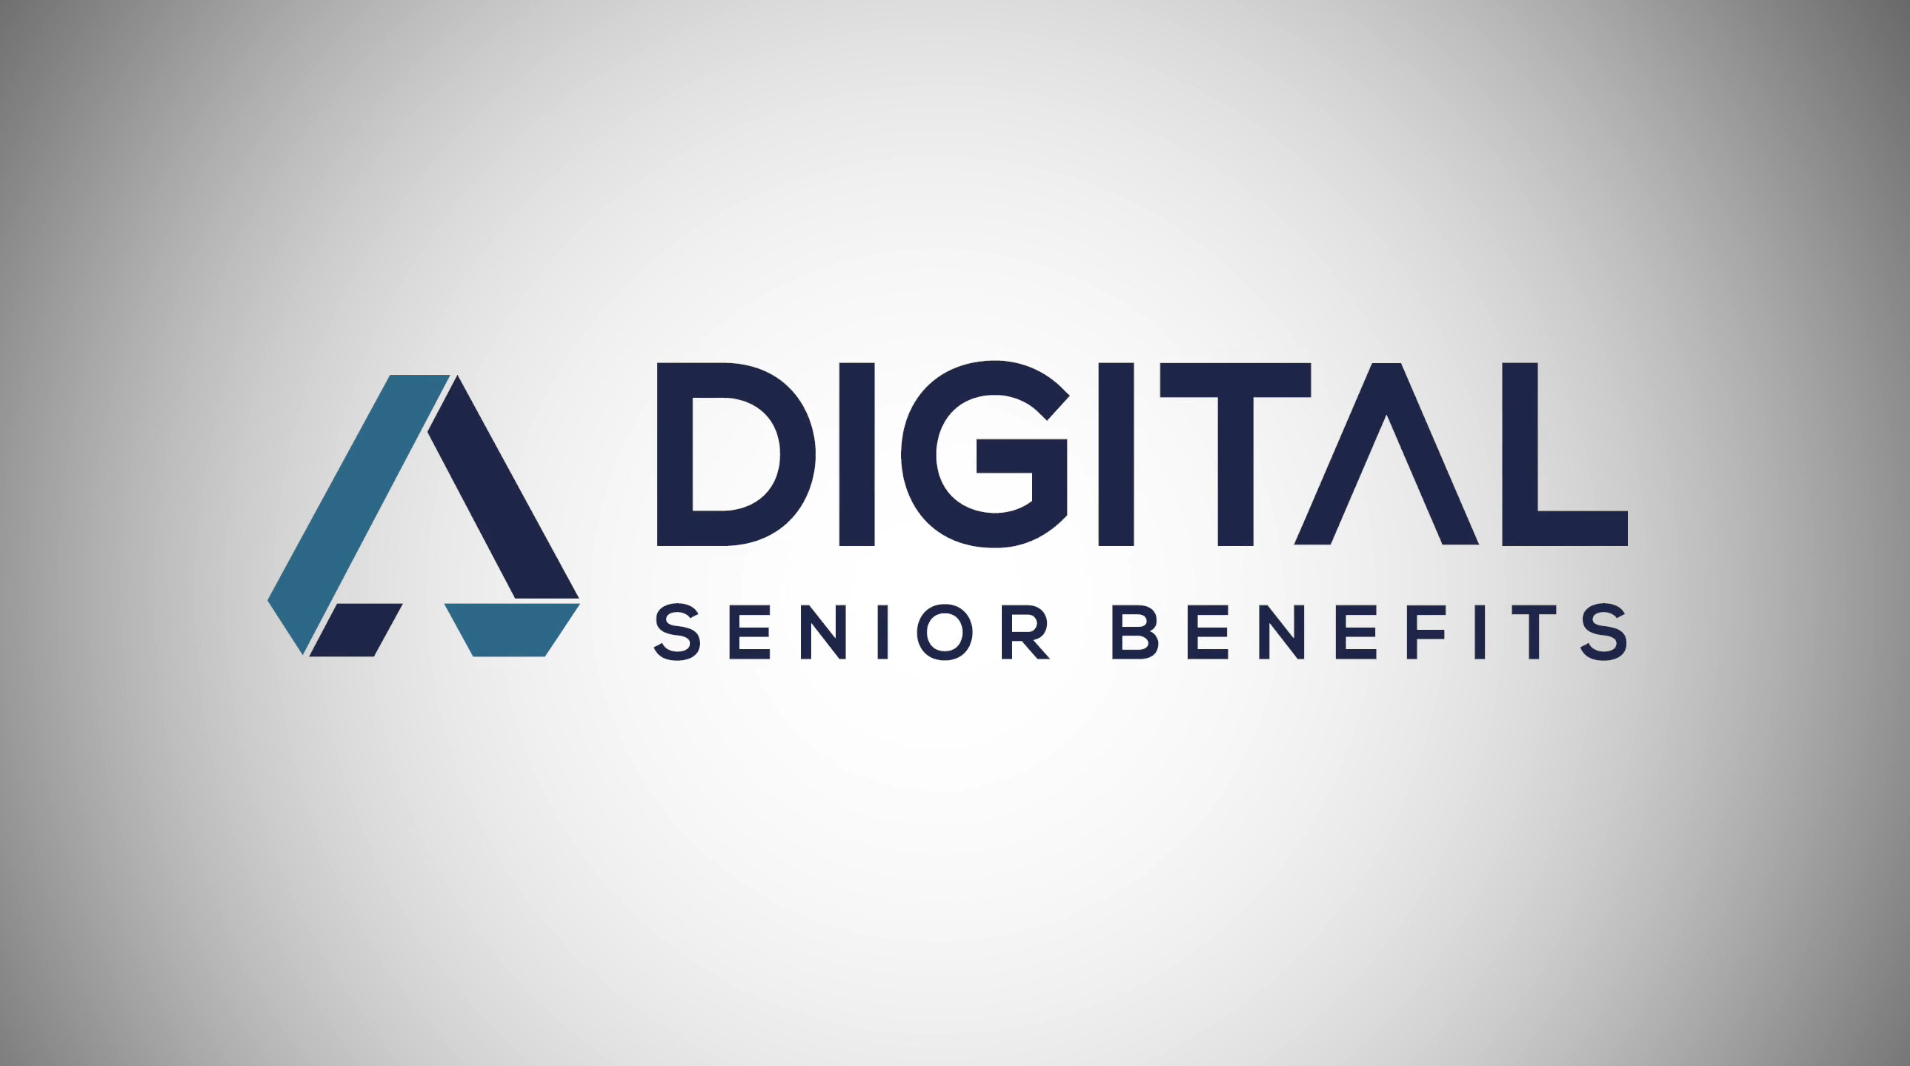 Digital Senior Benefits